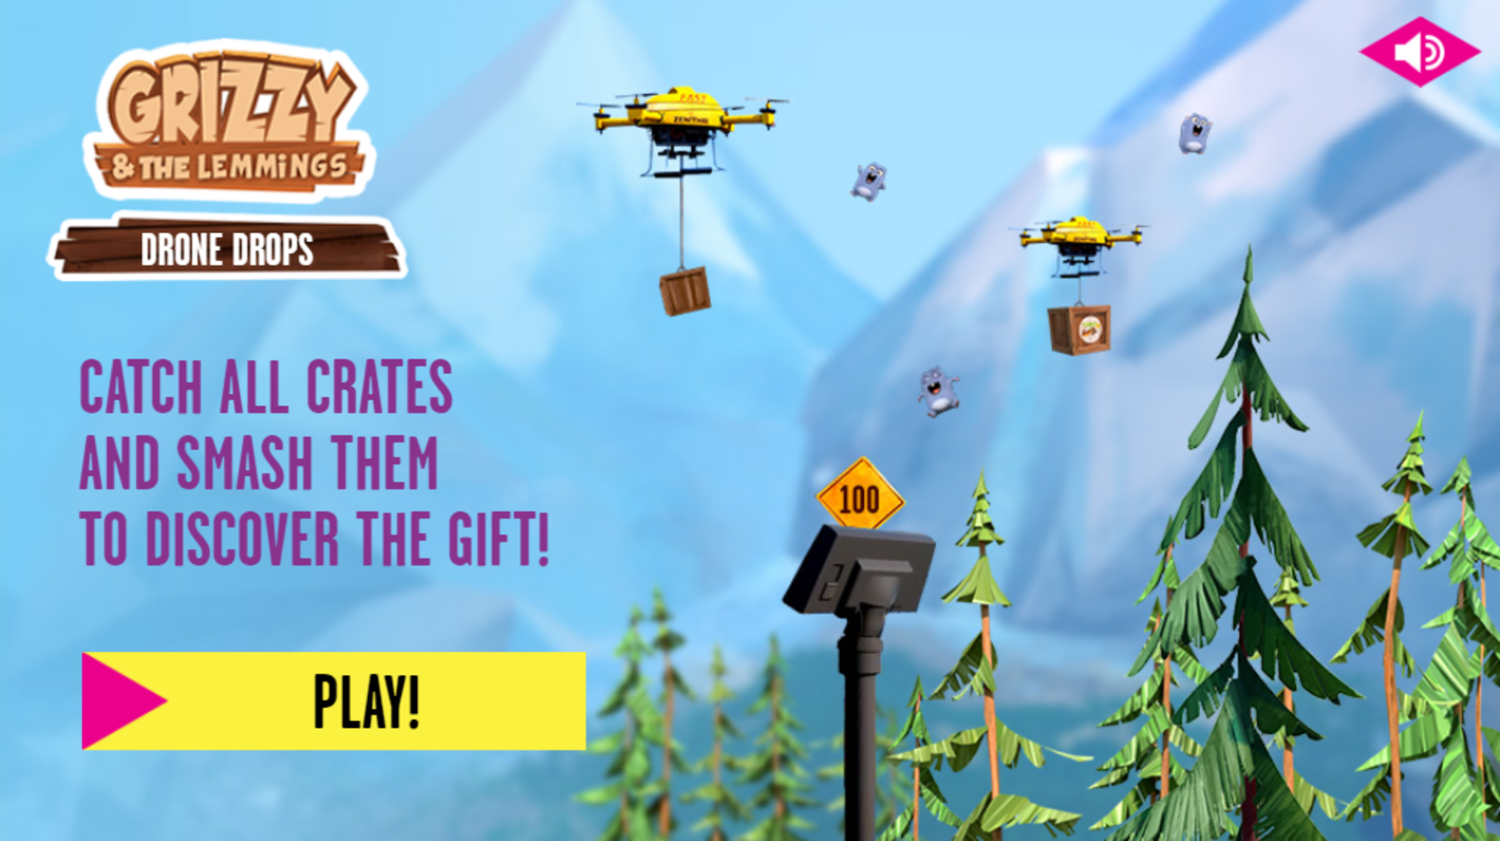 Grizzy and the Lemmings Drone Drops Game How To Play Screenshot.